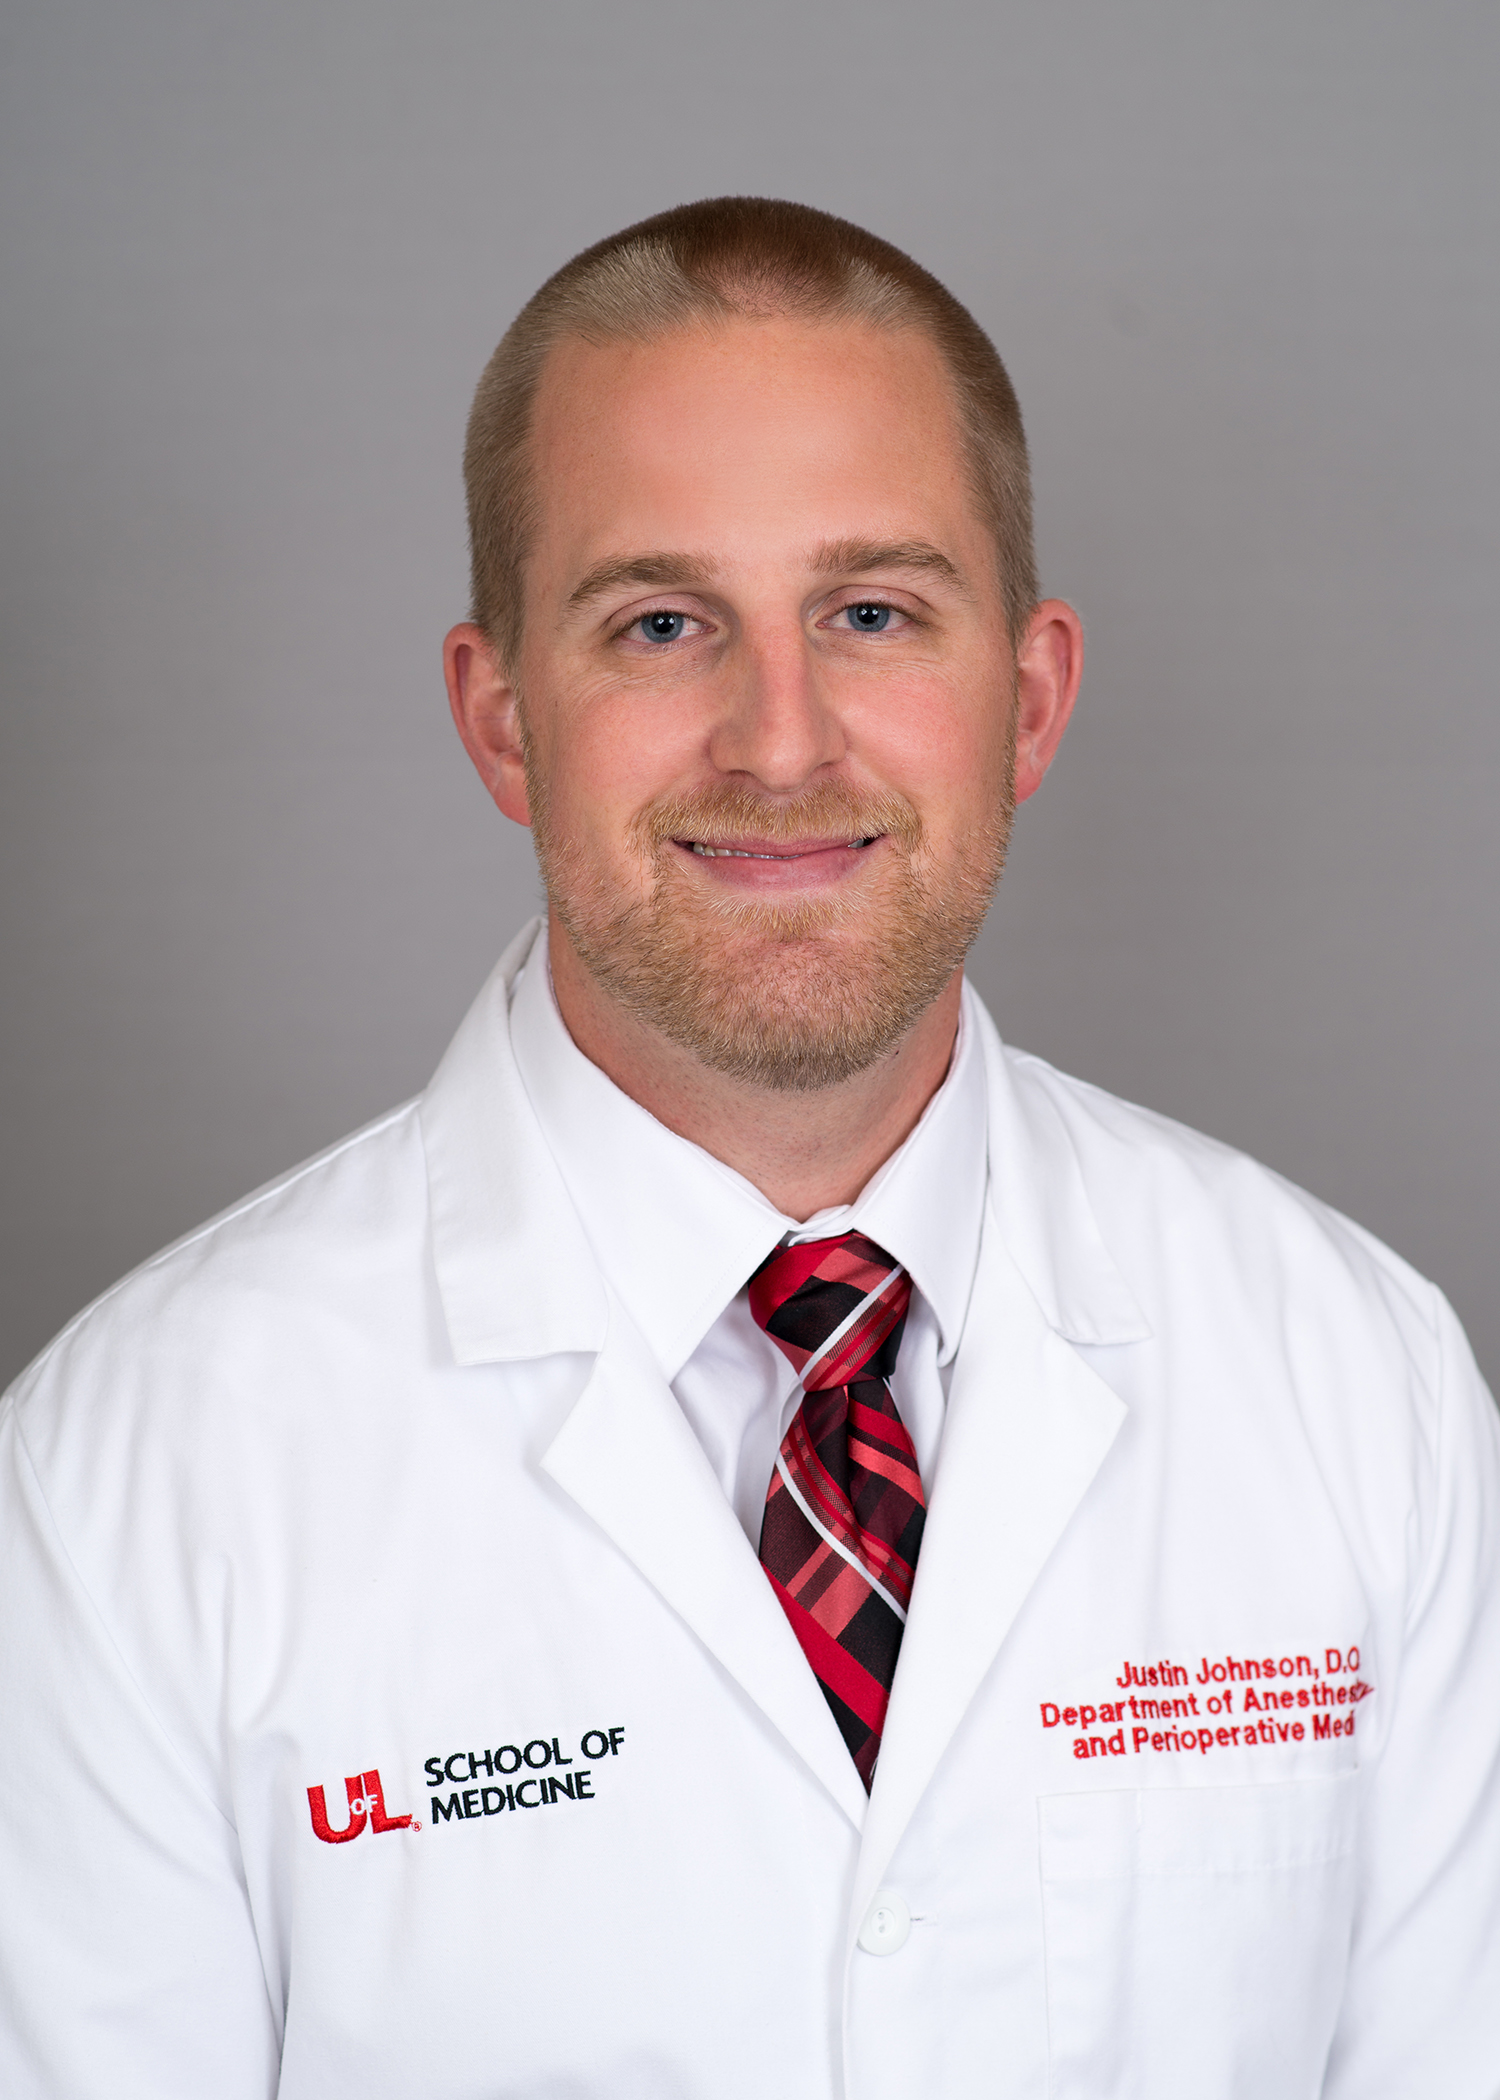 Dr. Justin Johnson